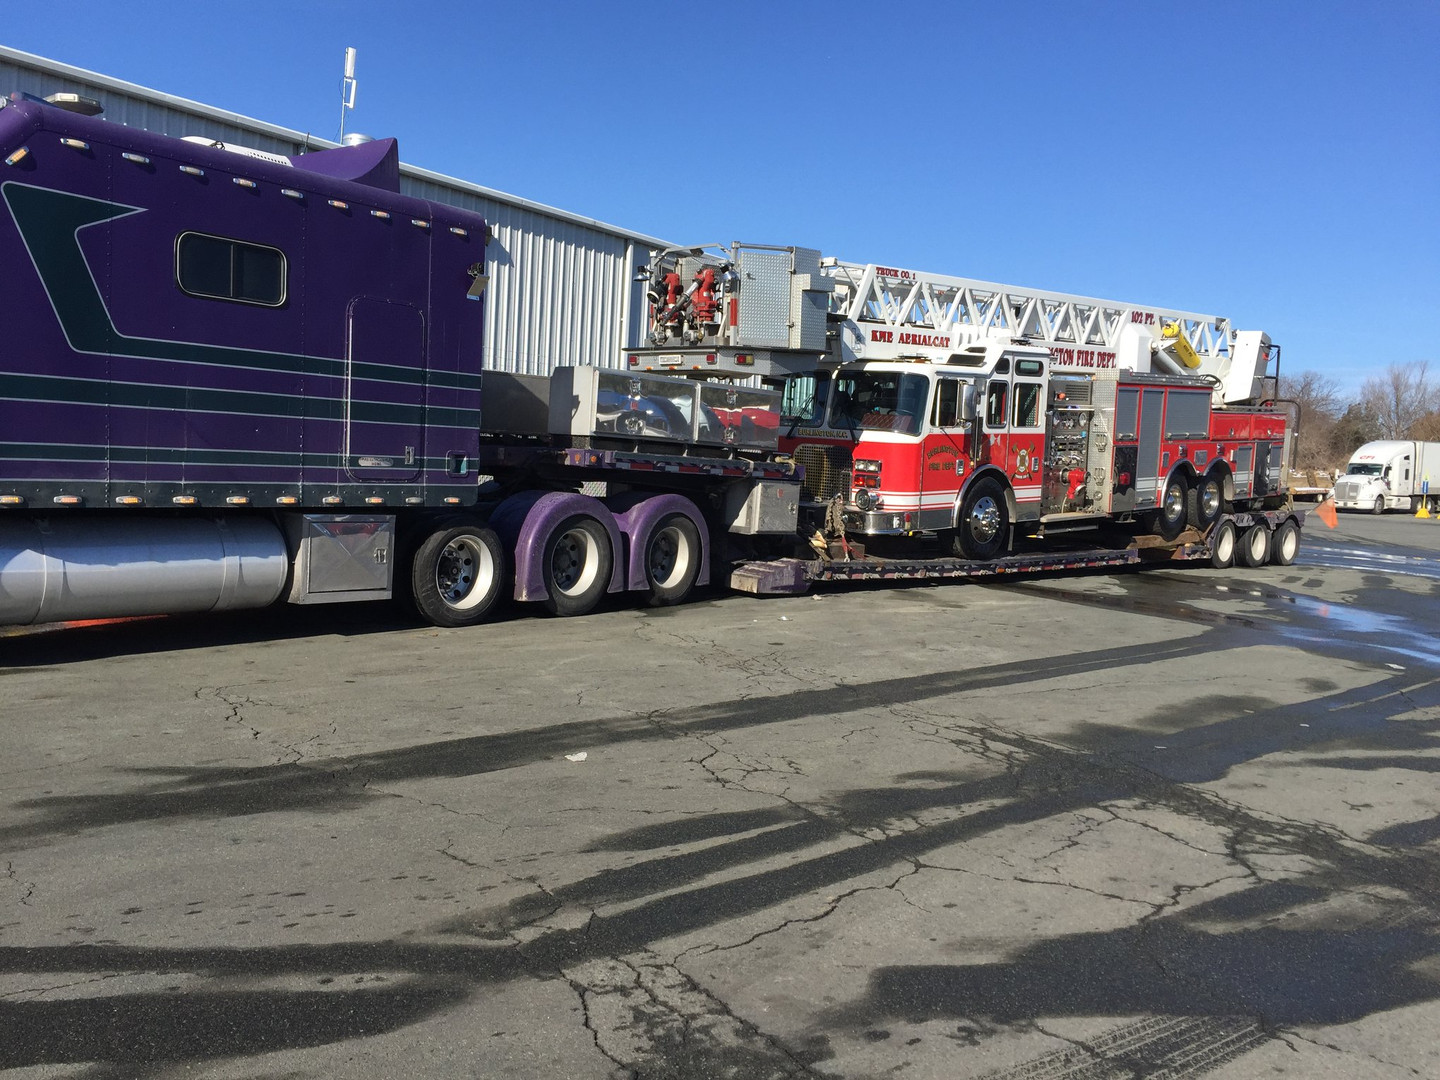 Fire Truck Donated from Burlington to Soledad